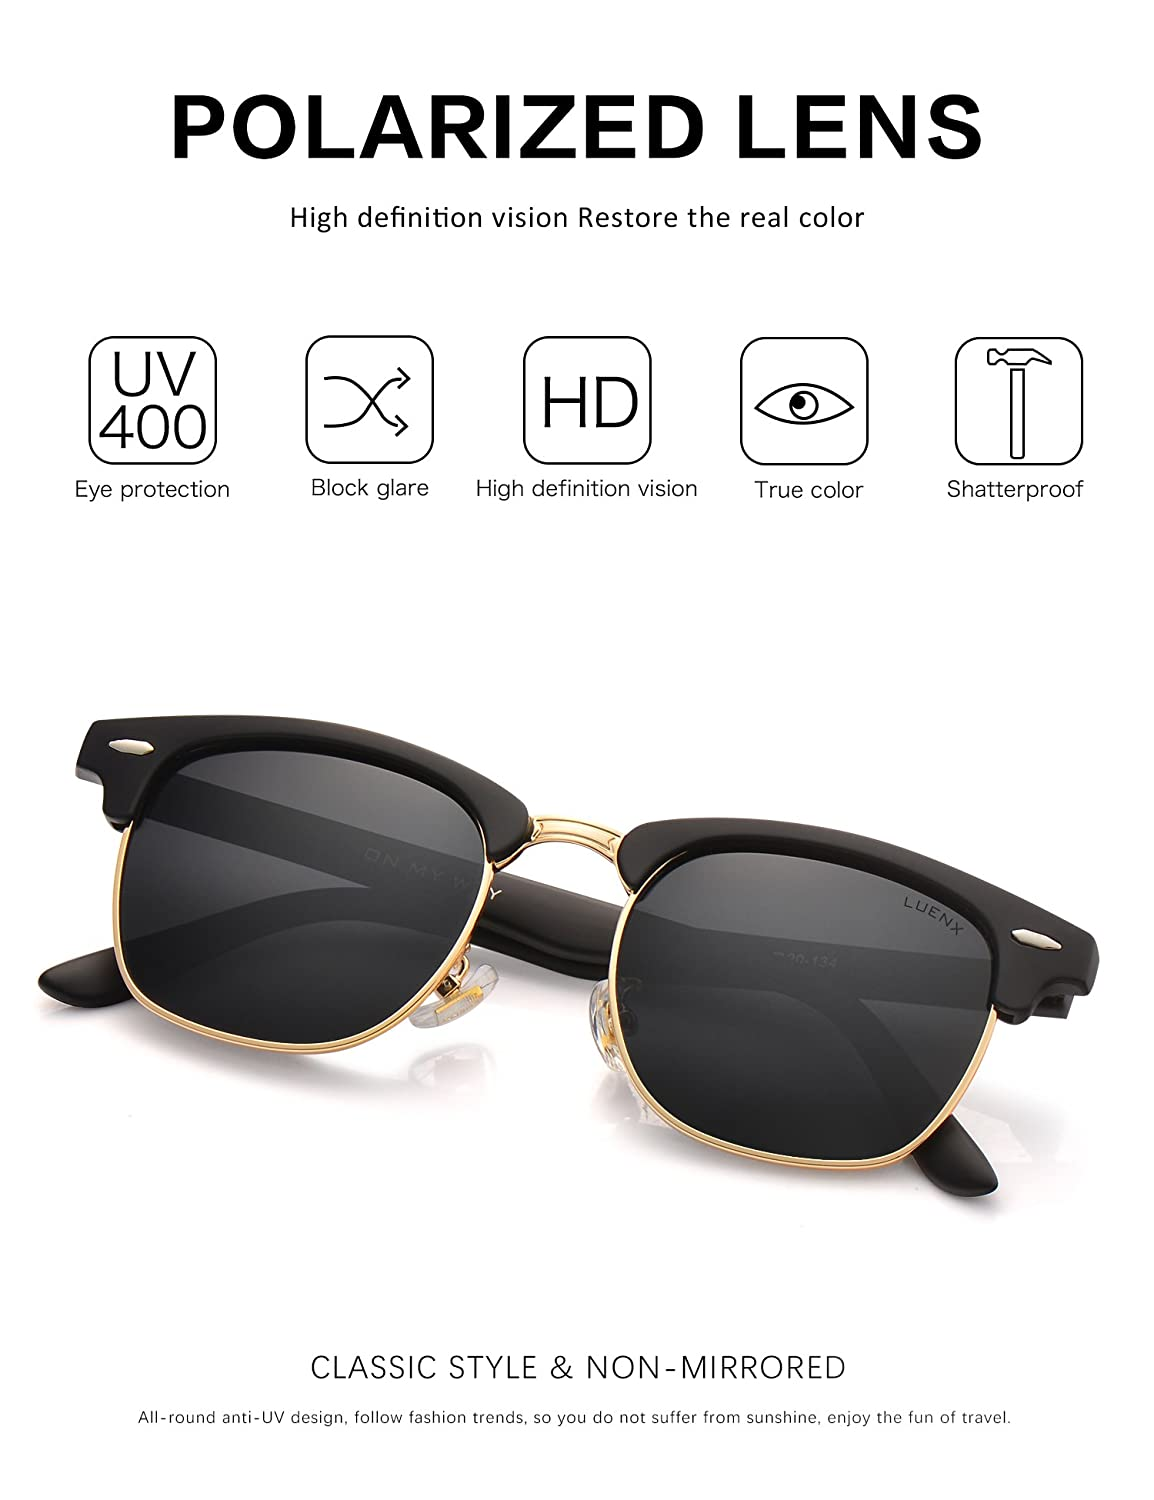 0172f5e8ab9 Mens Clubmaster Sunglasses Polarized Womens  UV 400 Protection 51MMby LUENX  with Case  Amazon.ca  Sports   Outdoors